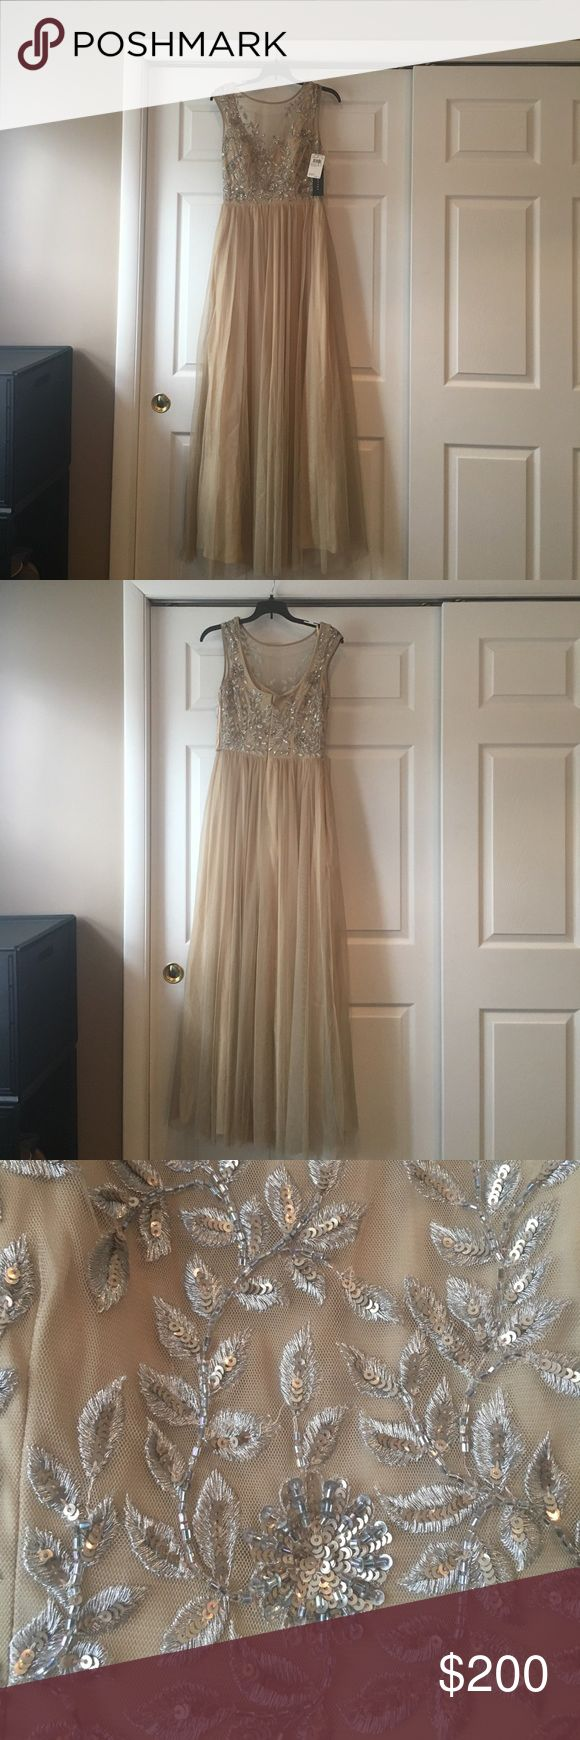 Aidan Mattox Cream Gown This is a BNWT Aidan Mattox Cream gown. It is a size 2 and comes with extra beads. The top is a beautiful illusion with beading. It had a tulle skirt that is A line. Aidan Mattox Dresses Prom